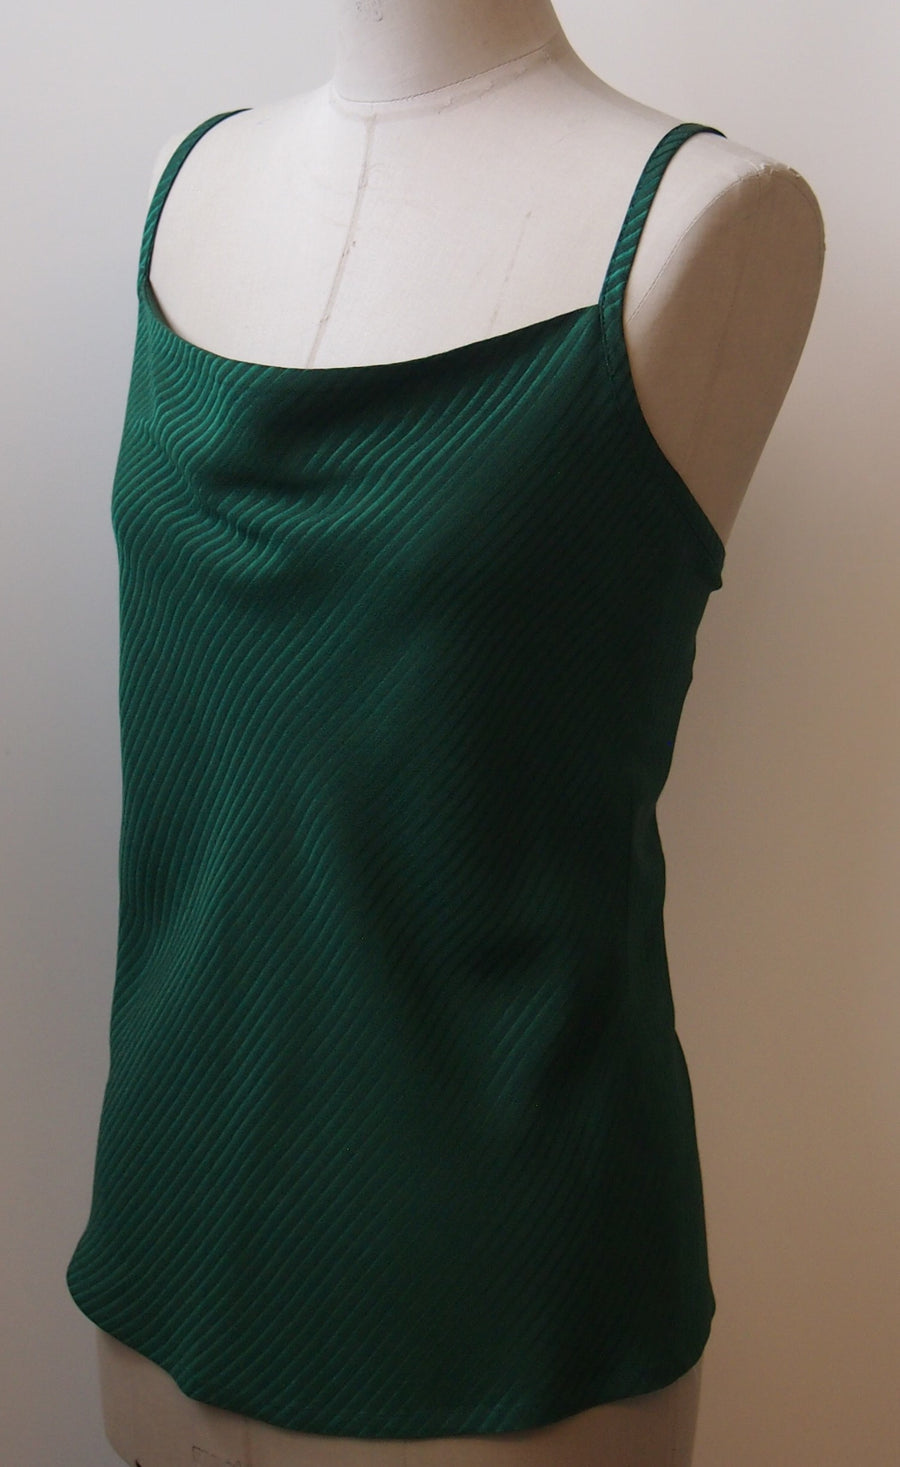 IODA Green Top